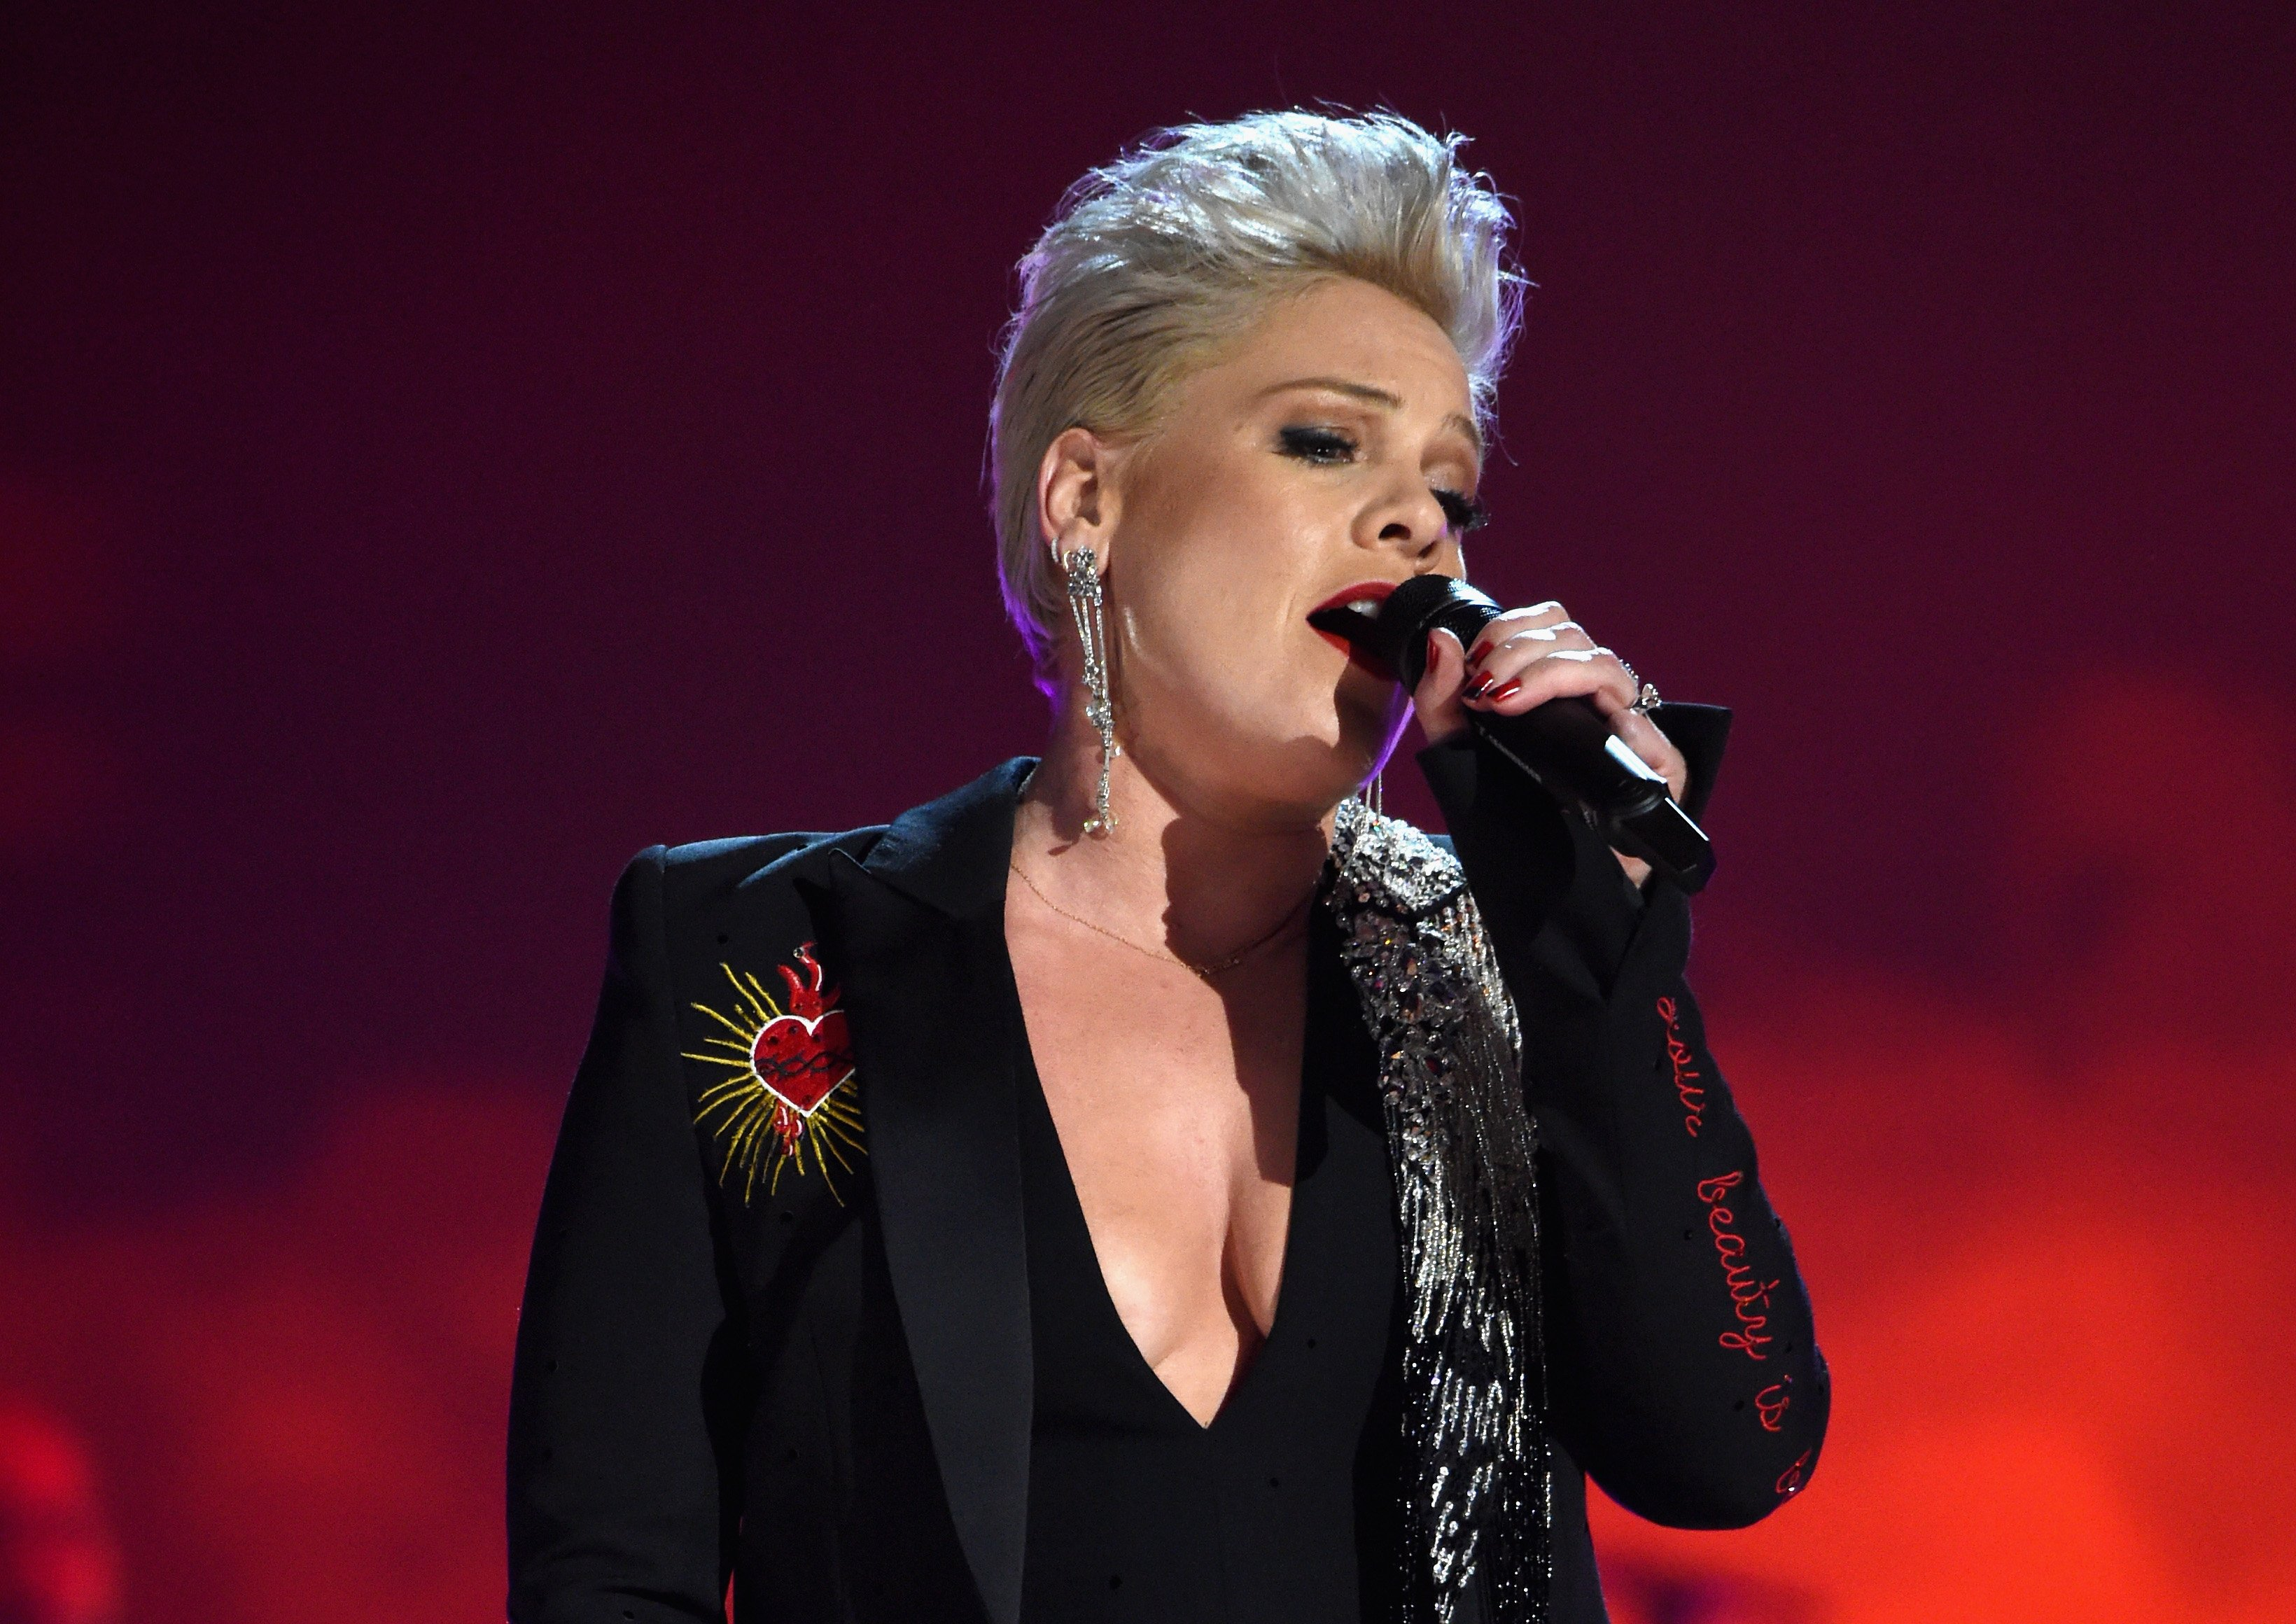 P!nk performs onstage during MusiCares Person of the Year honoring Dolly Parton at Los Angeles | Photo: Getty Images